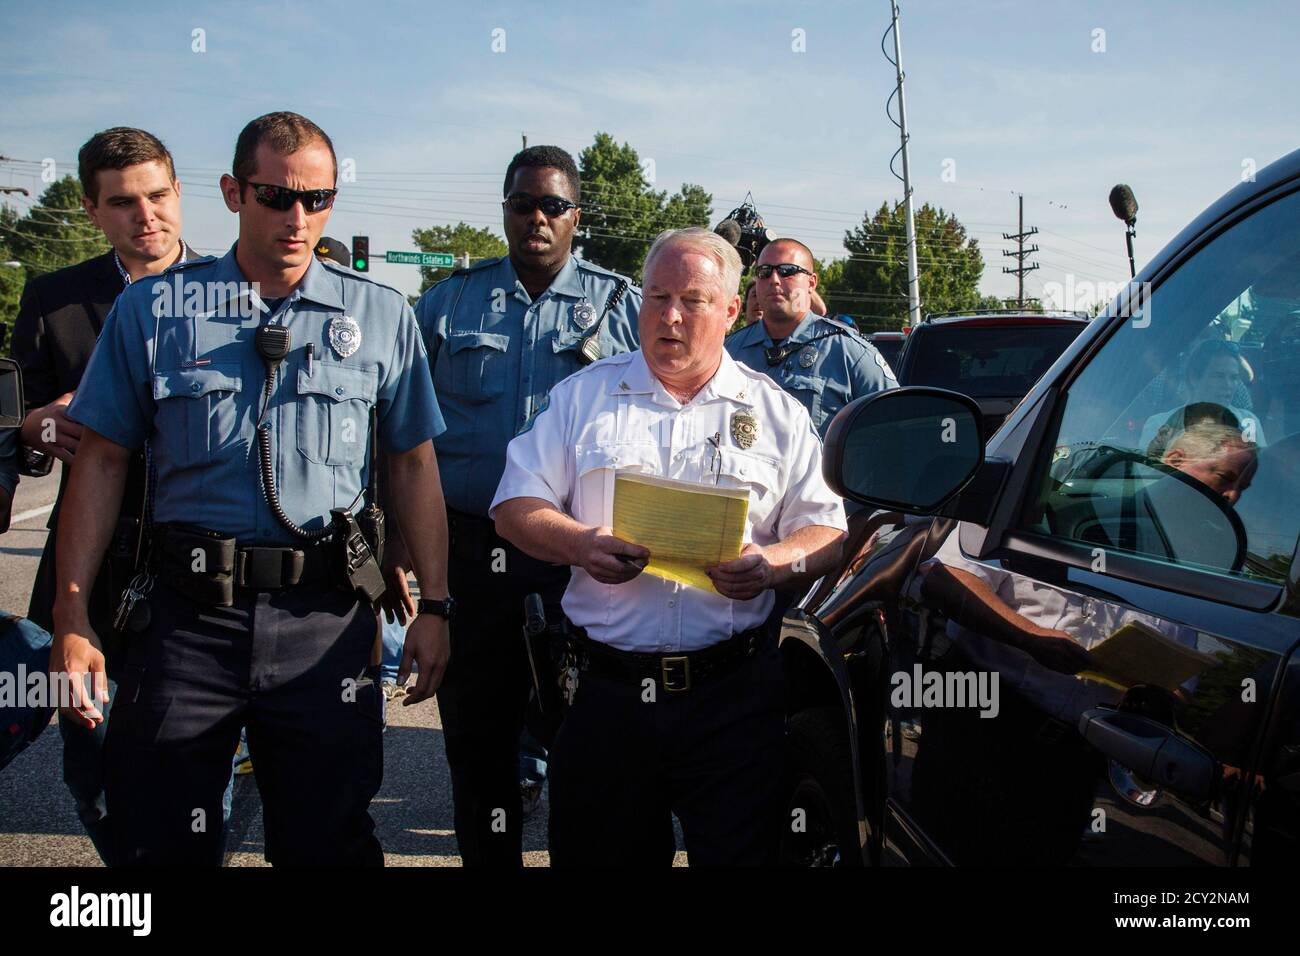 Ferguson Police Chief Thomas Jackson departs after announcing the name of the officer involved in the shooting of Michael Brown as officer Darren Wilson, in Ferguson, Missouri August 15, 2014. The briefing was held near a QuikTrip convenience store that had been burned amid protests over the shooting of Brown, 18, last Saturday. REUTERS/Lucas Jackson (UNITED STATES - Tags: CIVIL UNREST CRIME LAW) Foto de stock